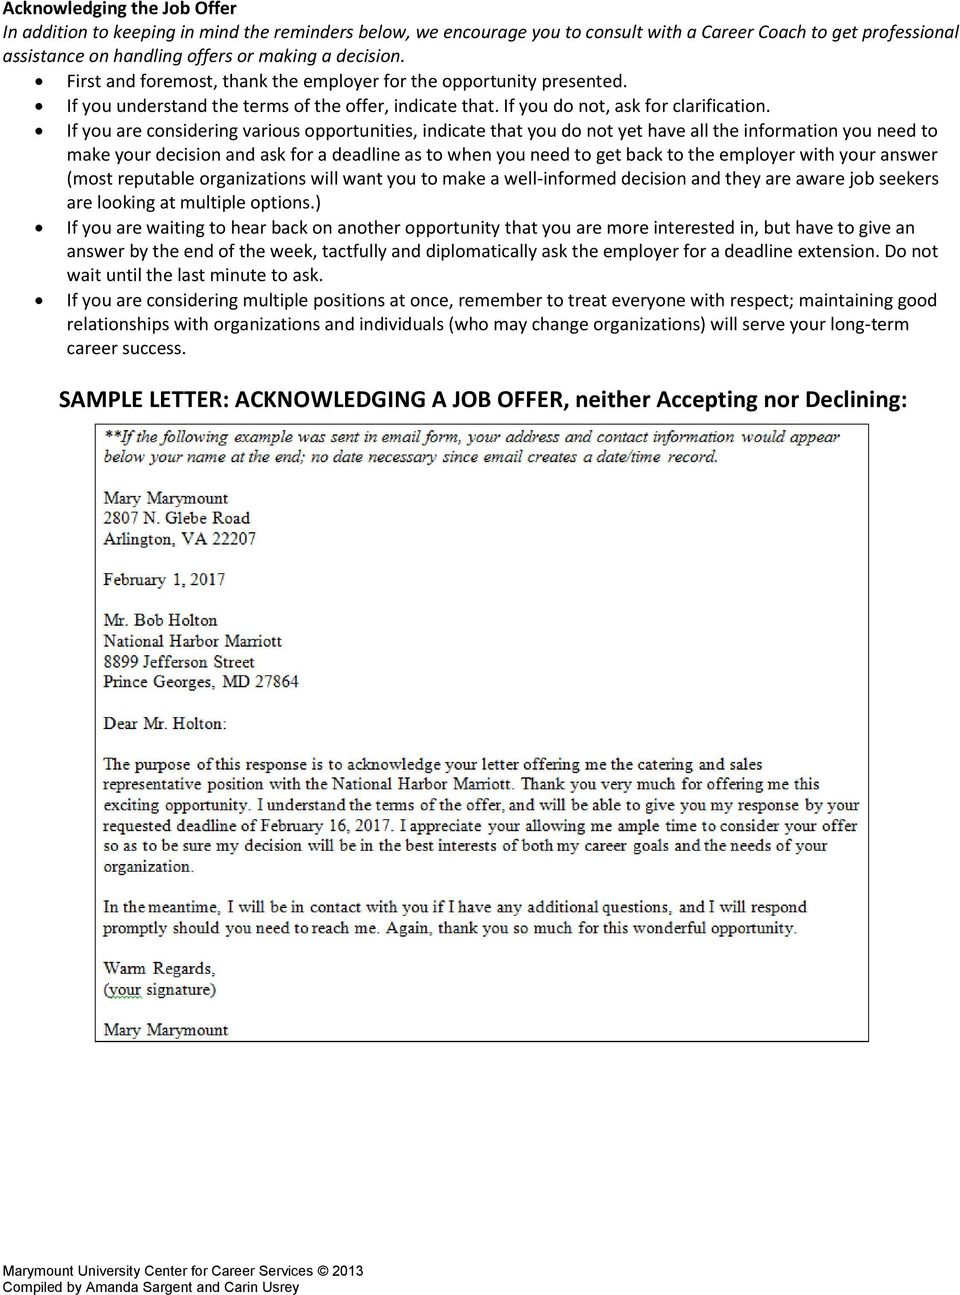 Sample Letter Declining Services from docplayer.net